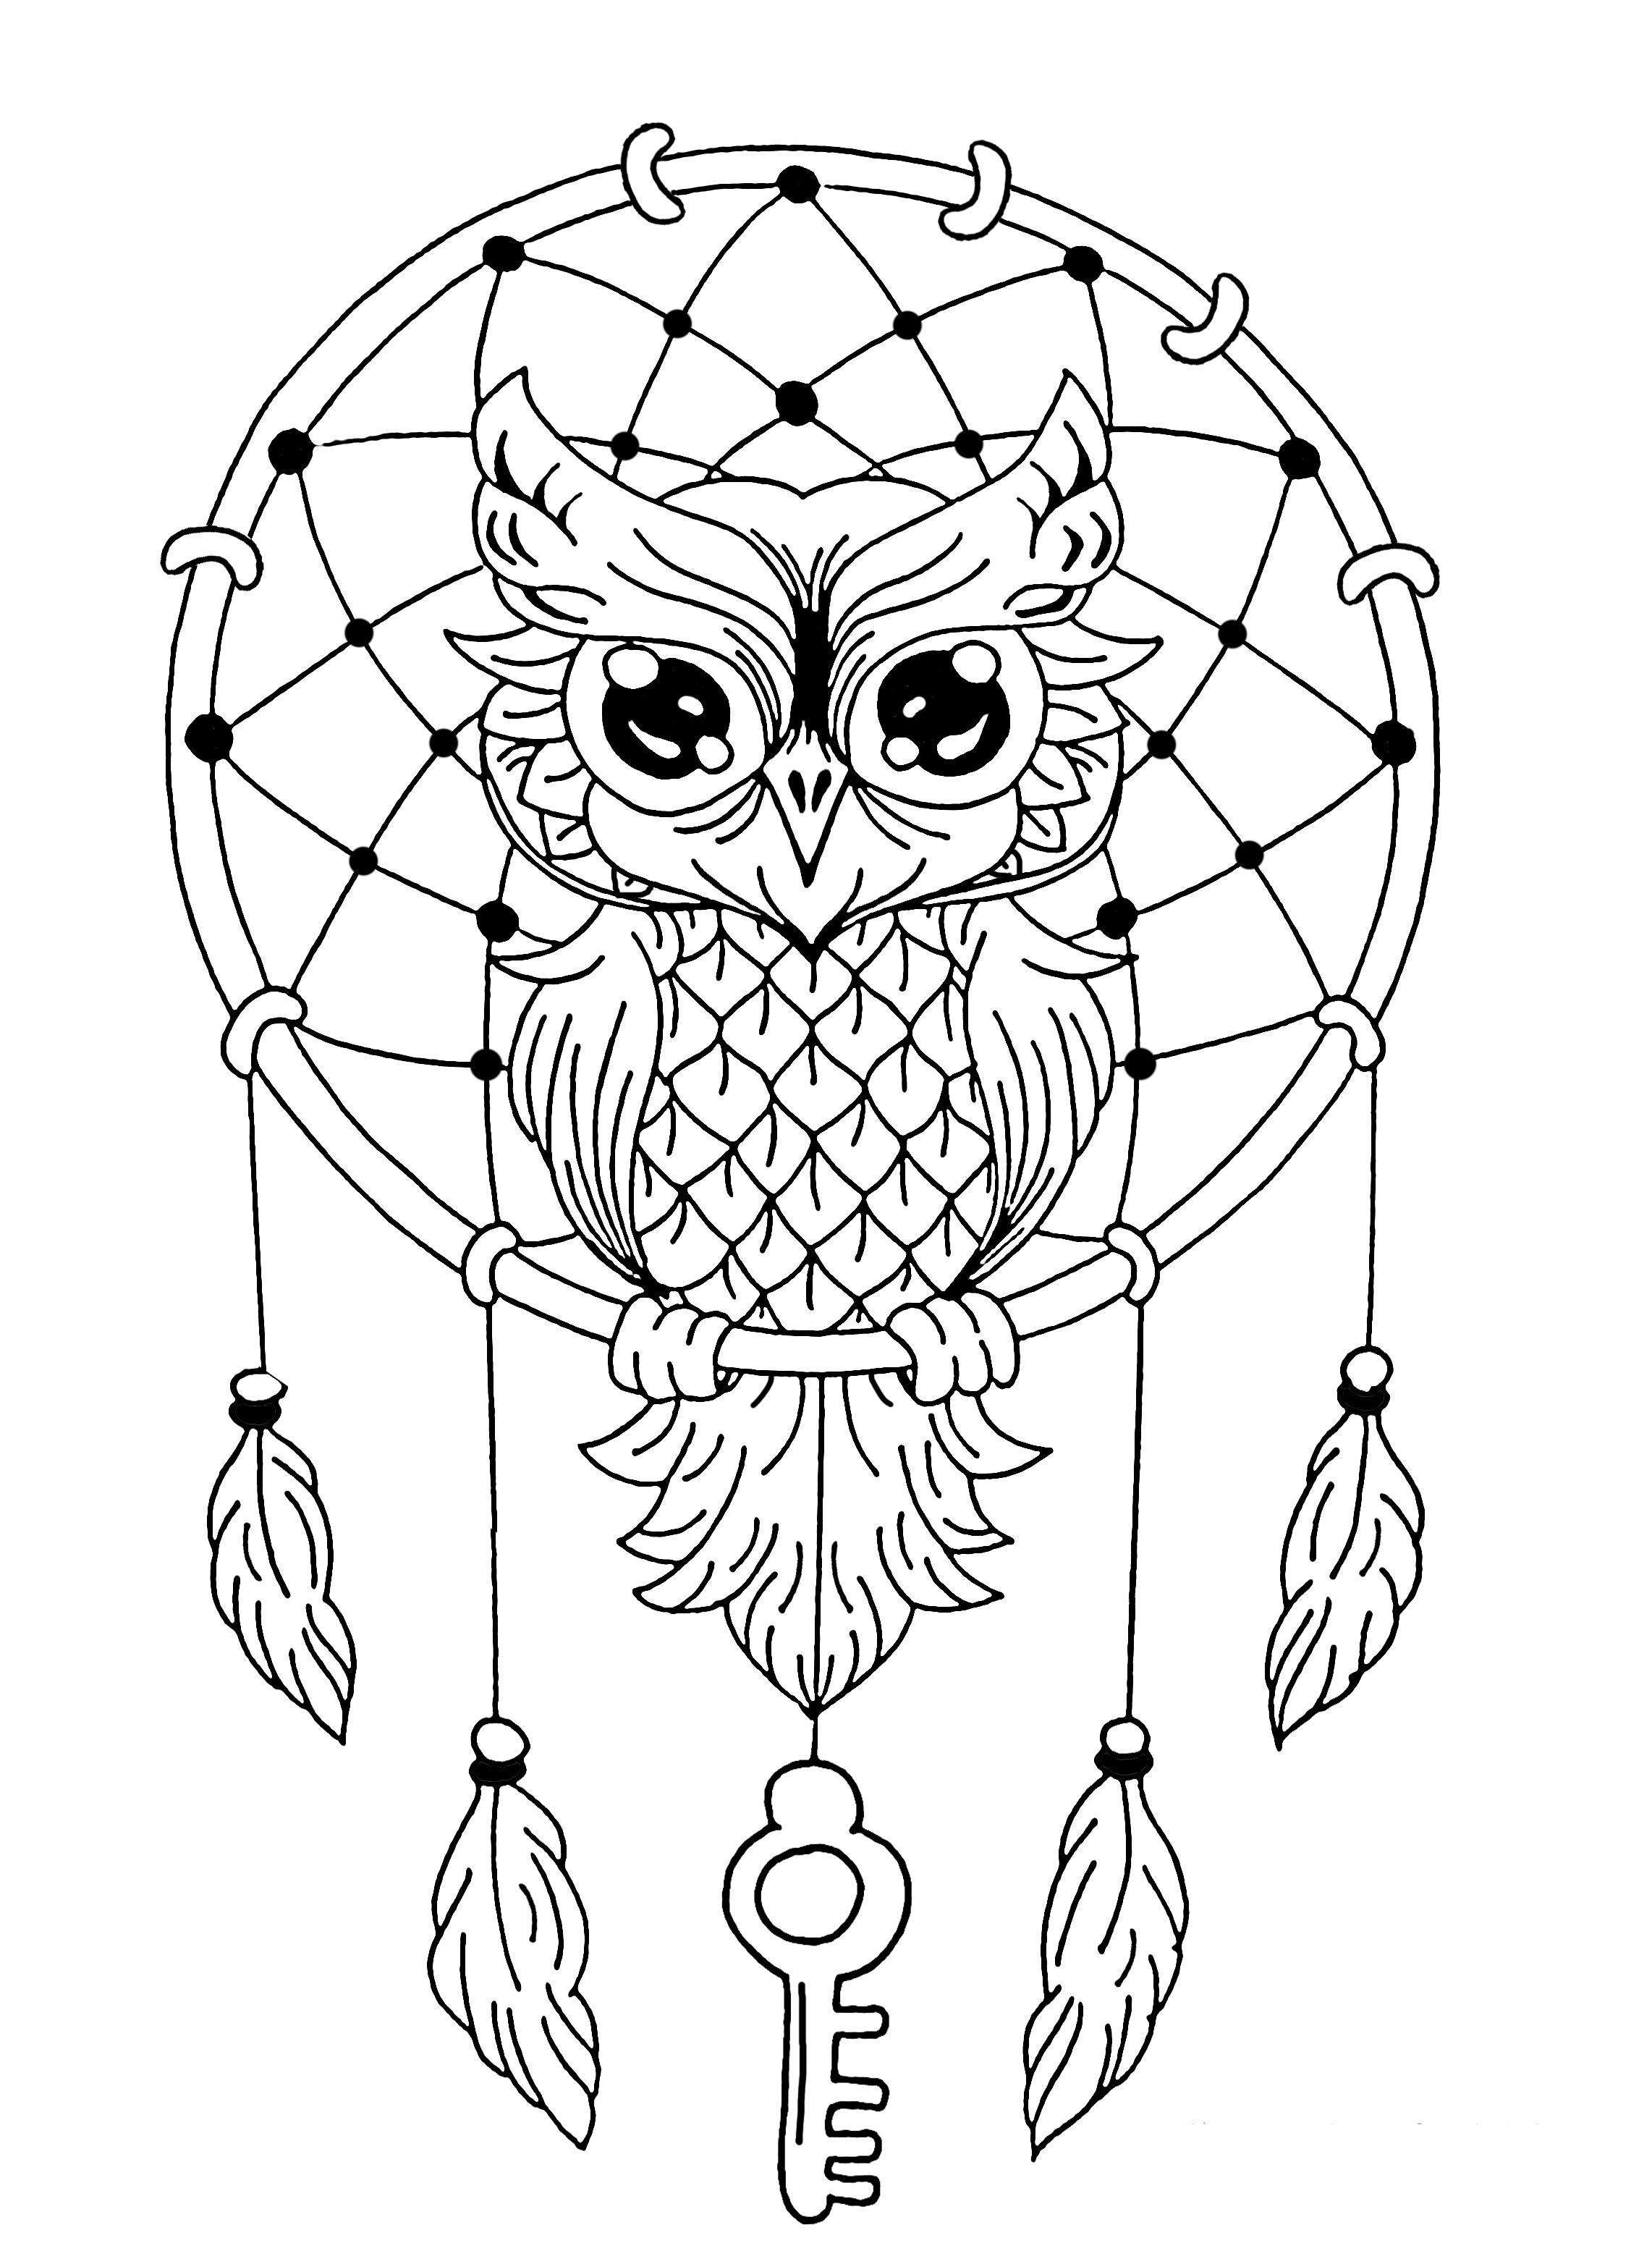 coloring for kids easy 17 best images about easy coloring pages for young kids on coloring easy for kids